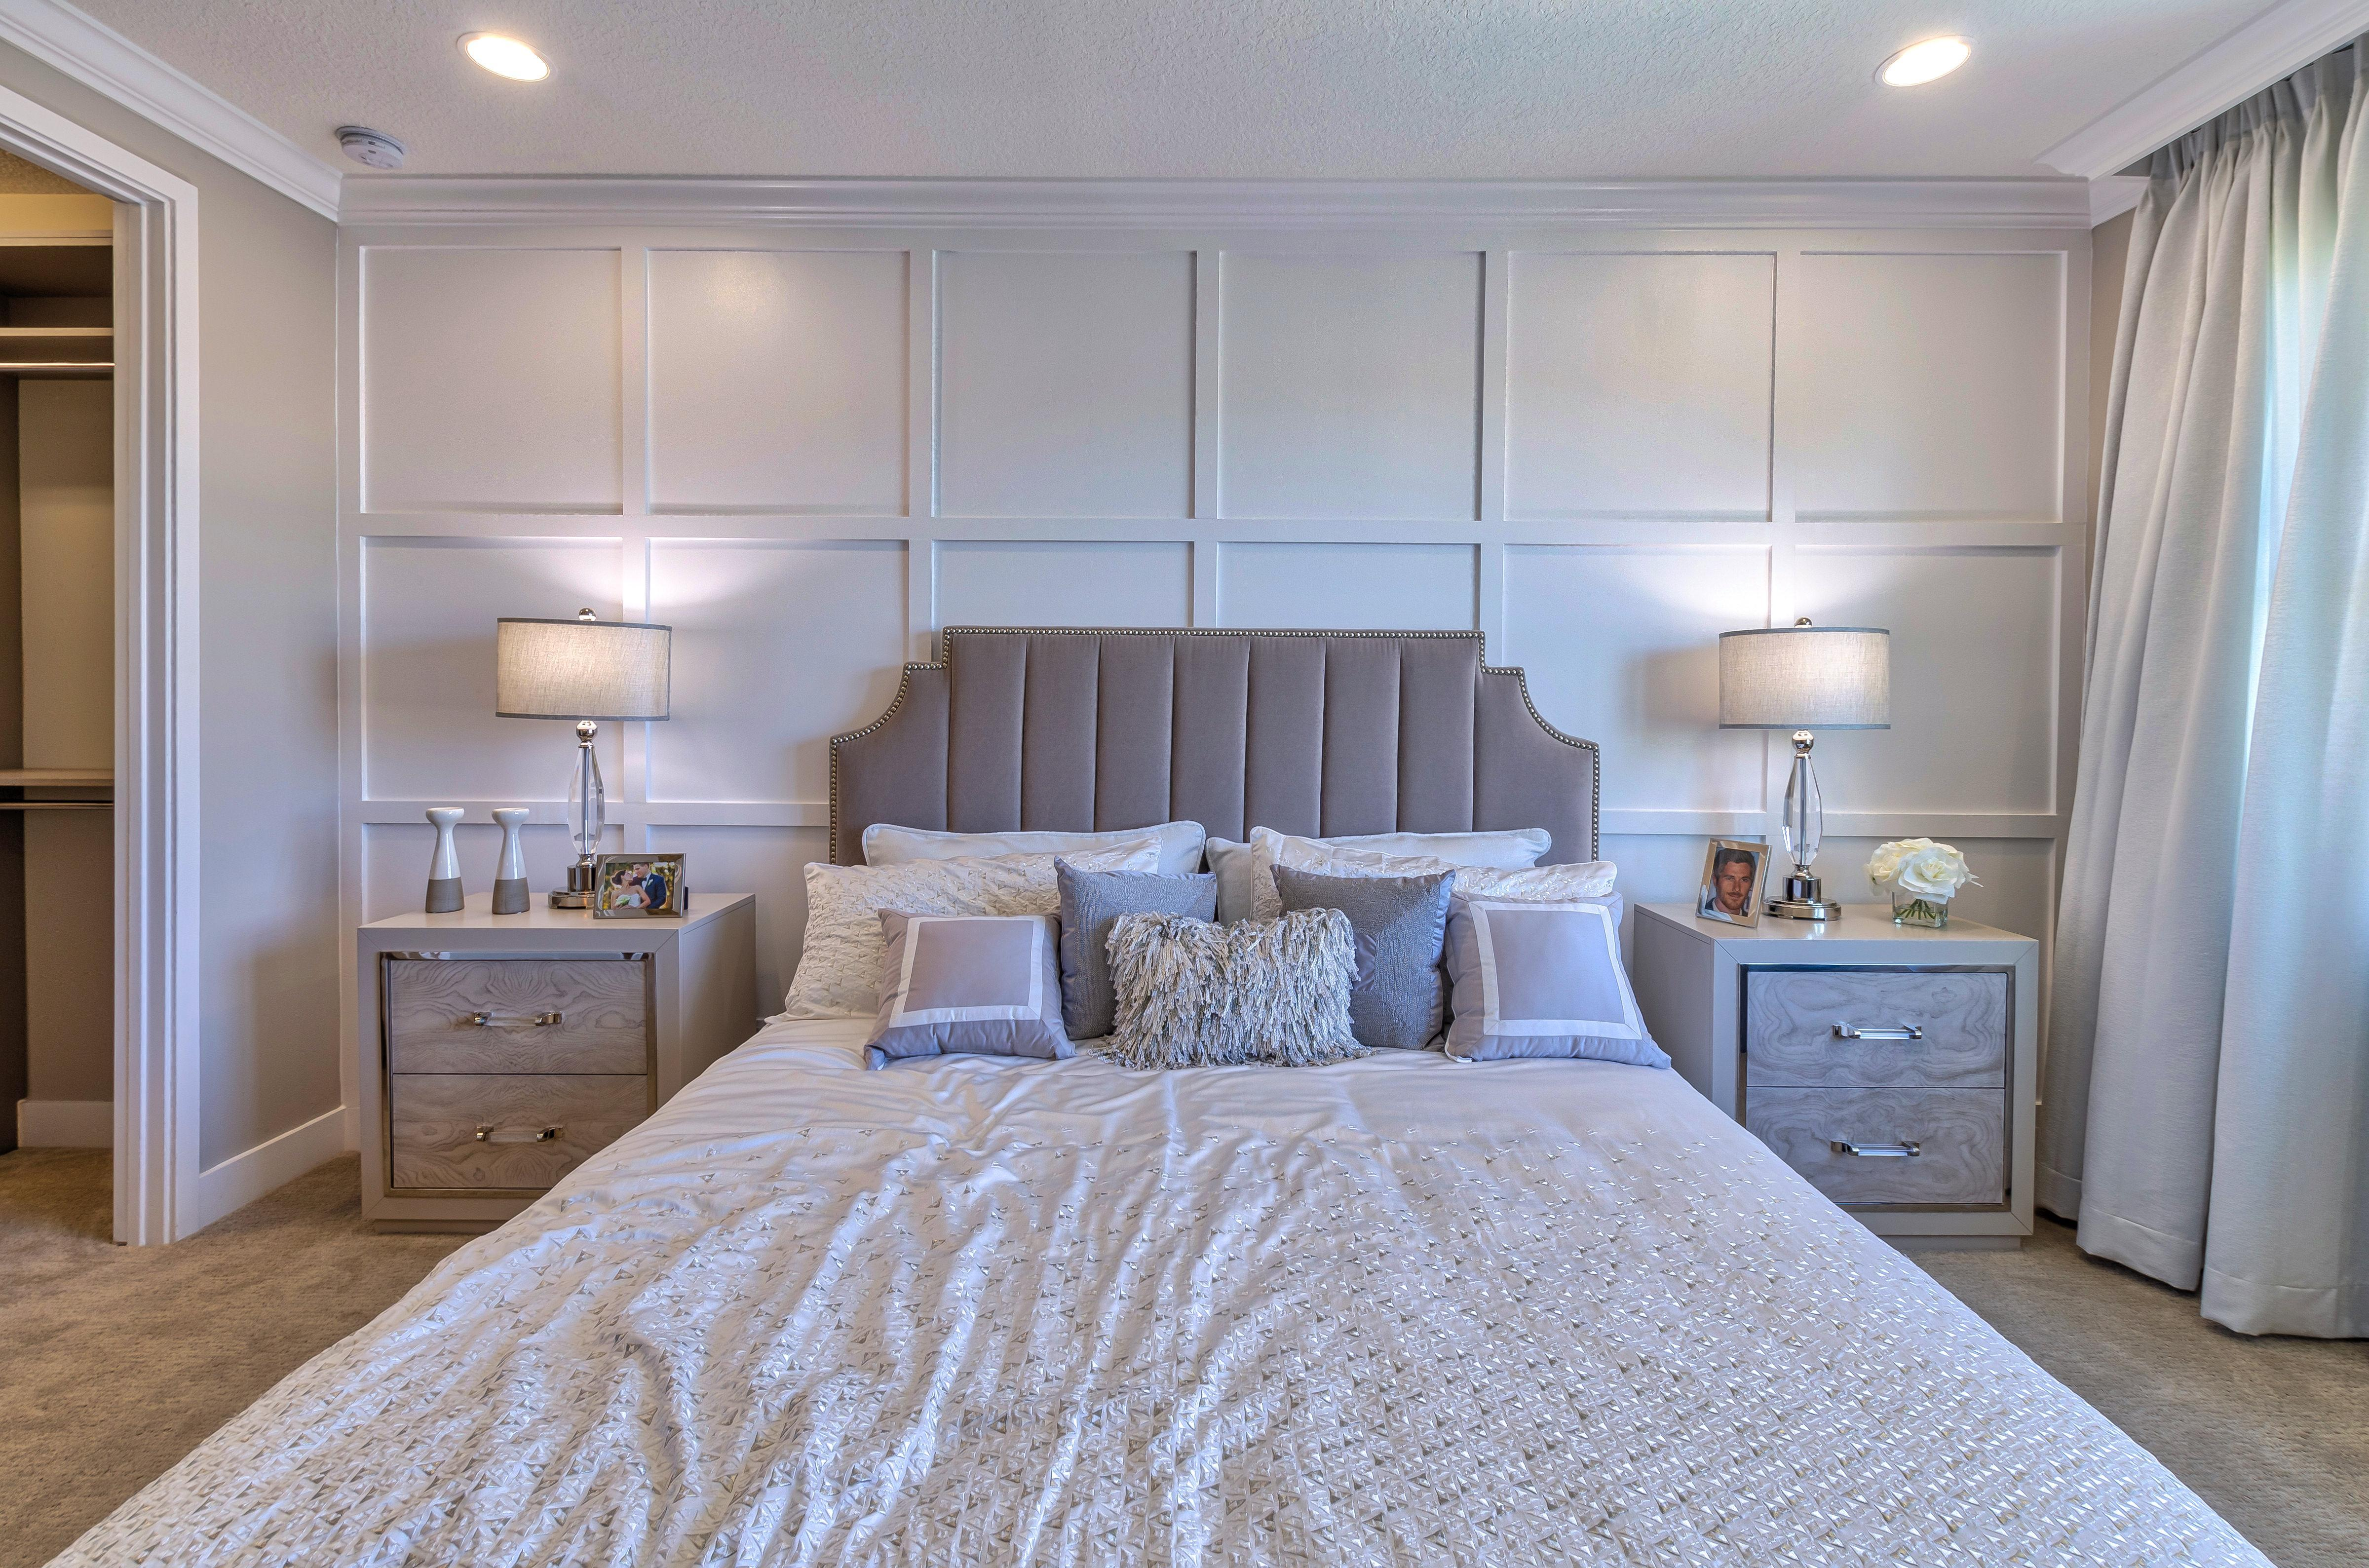 Bedroom featured in the Mesa By Akel Homes in Palm Beach County, FL